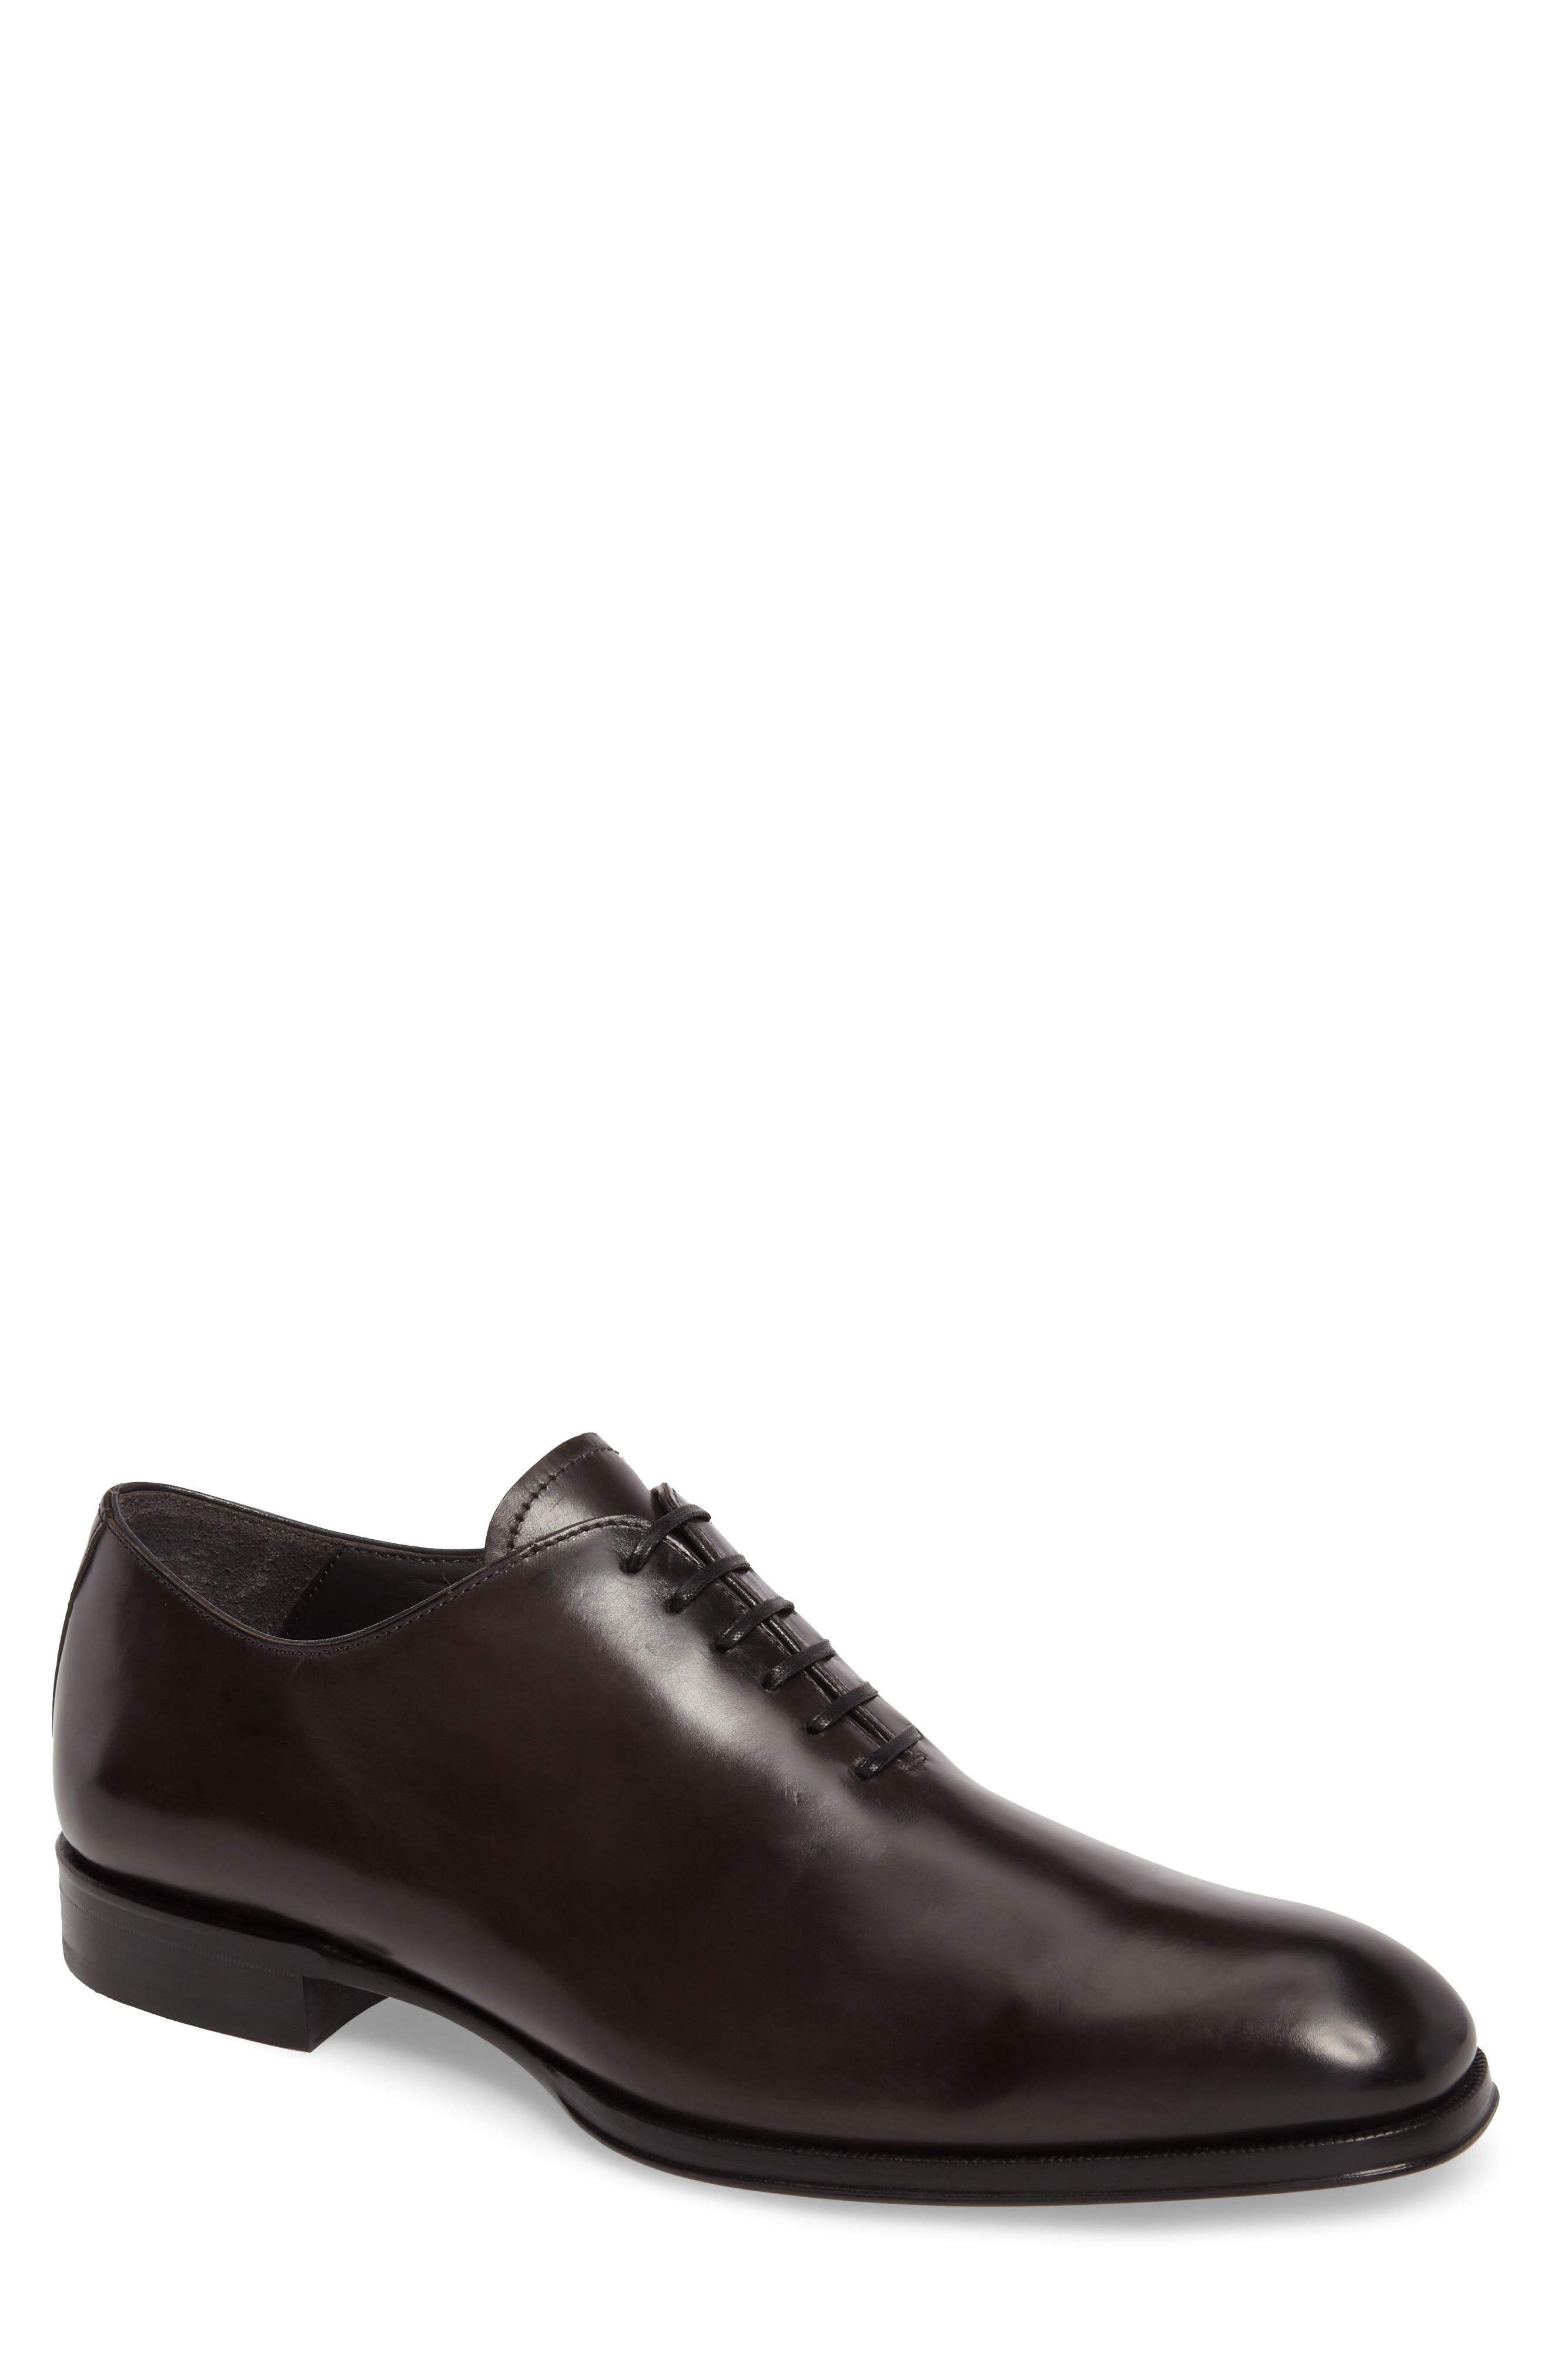 Alternate Image 1 Selected - To Boot New York Wholecut Oxford (Men)